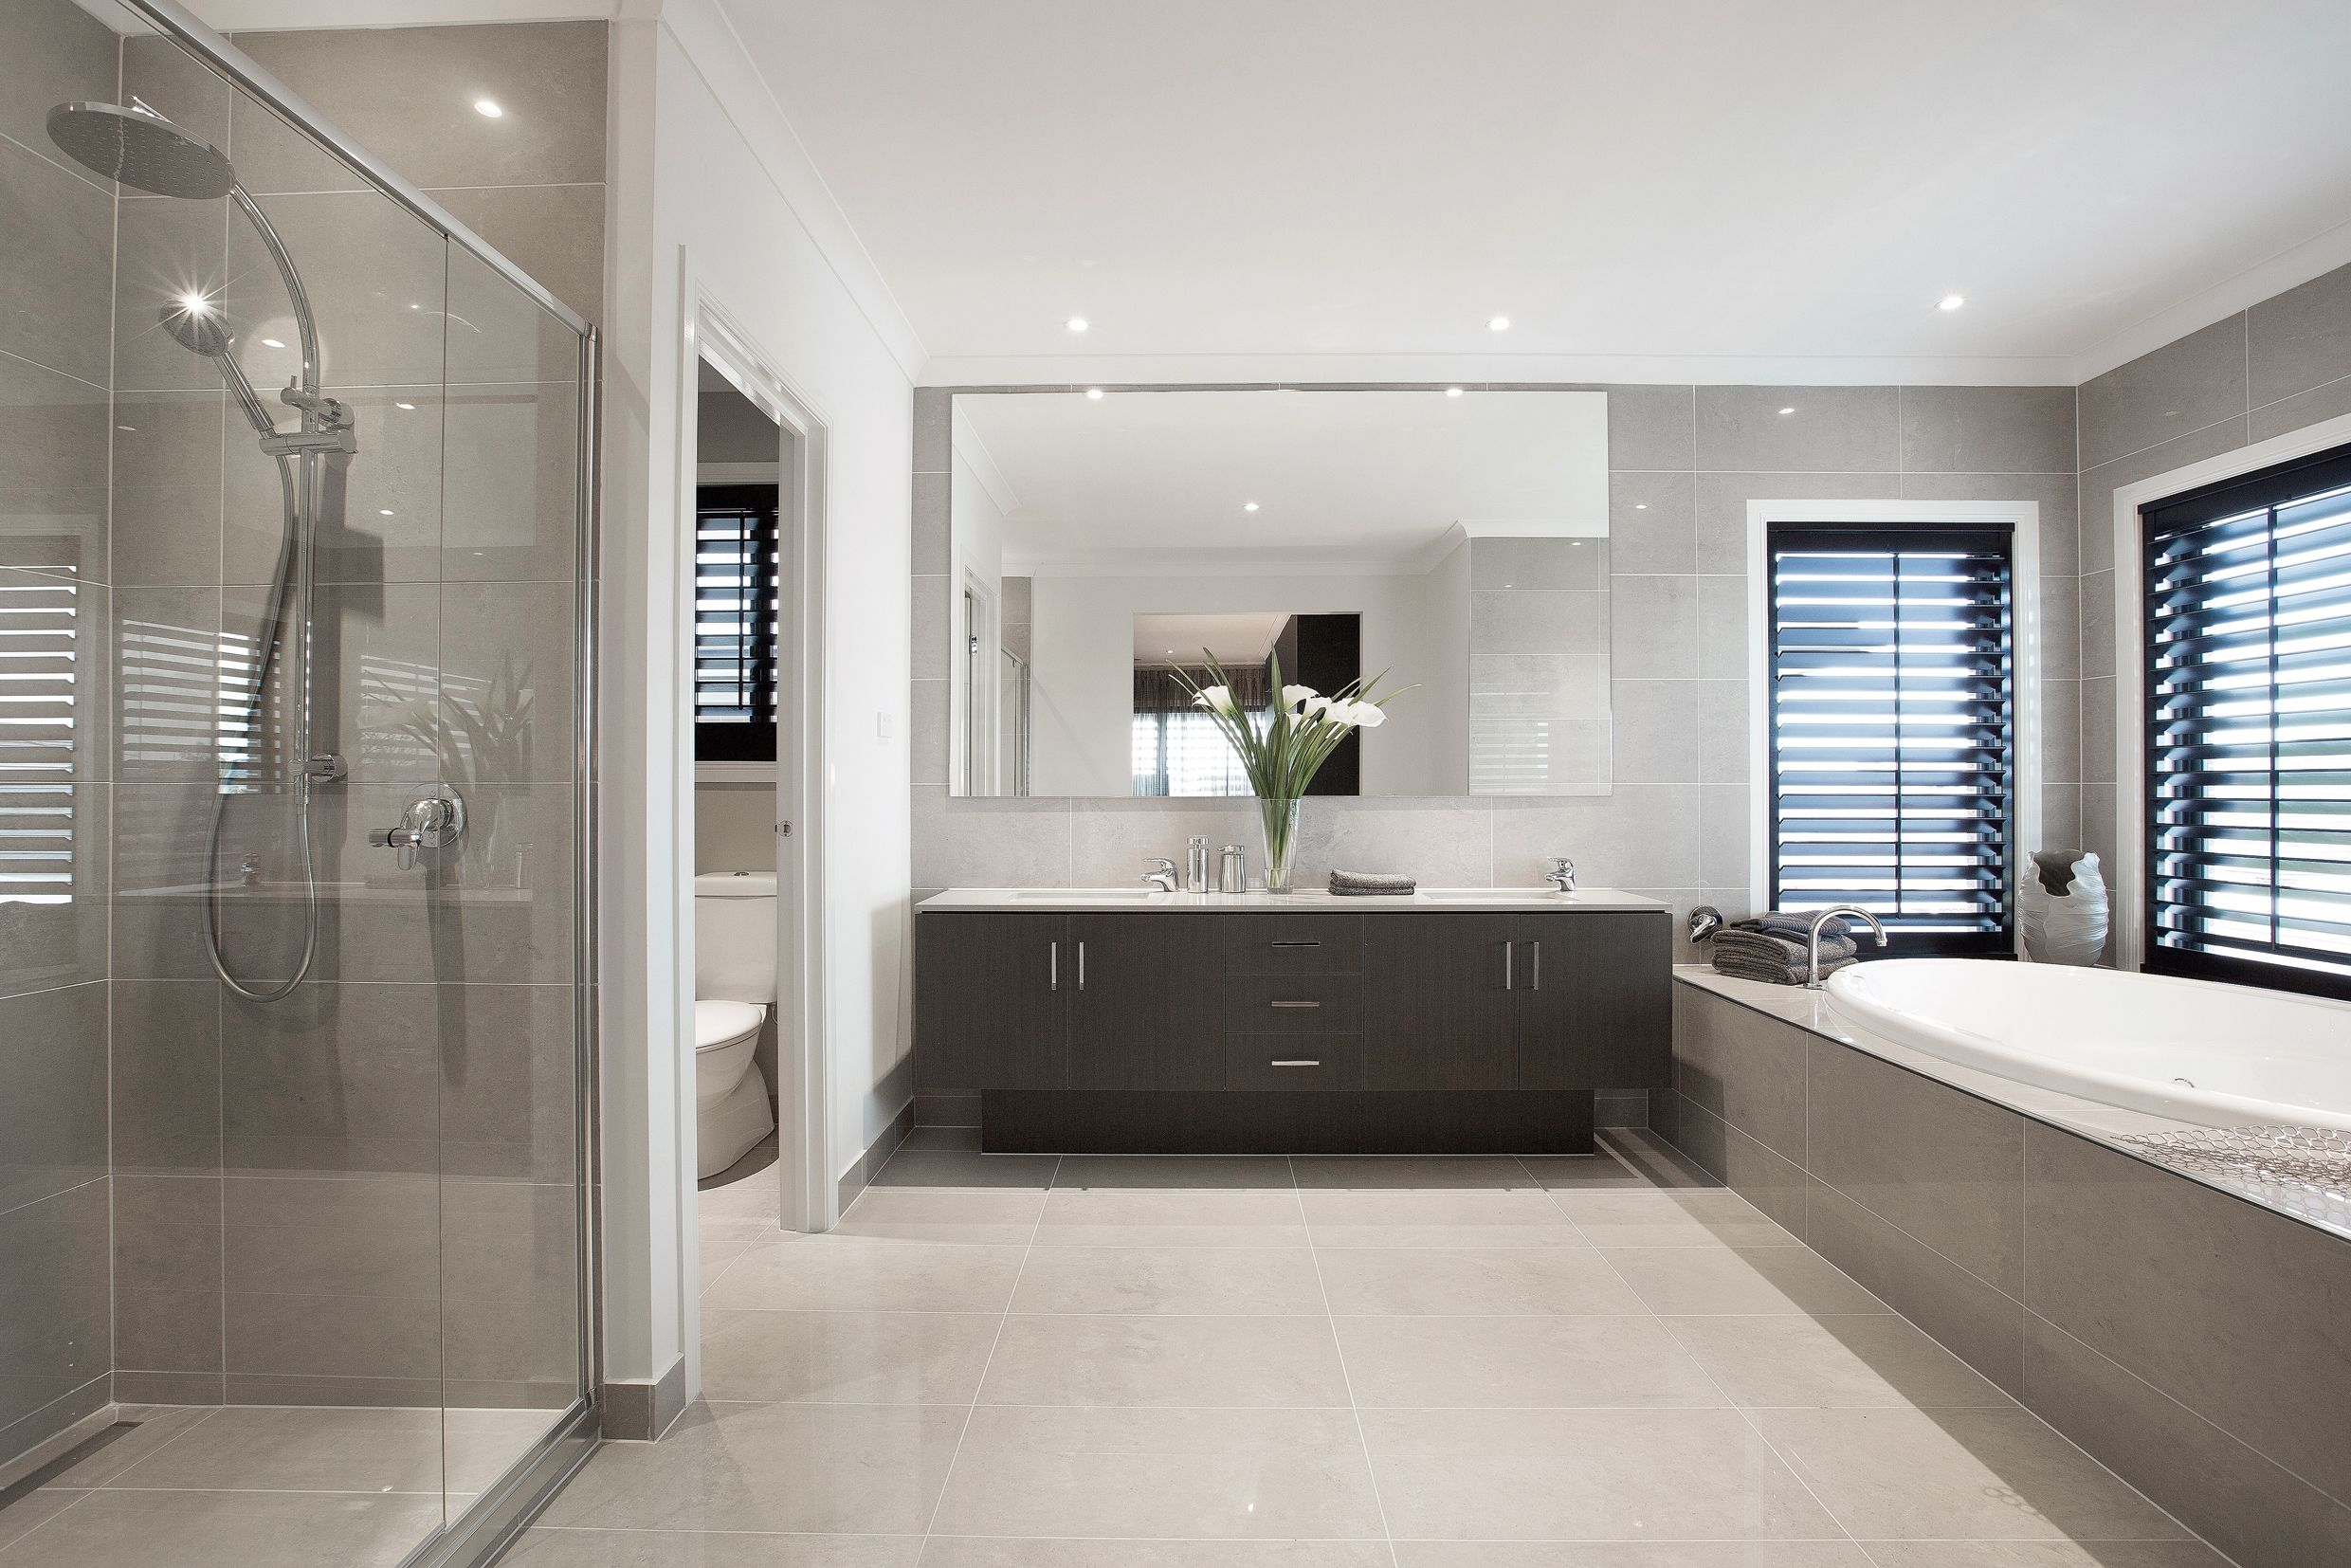 Lovely 1 Ceramic Tile Big 1 Ceramic Tiles Rectangular 12 X 12 Ceiling Tile 24 X 48 Ceiling Tiles Young 2X2 Drop Ceiling Tiles Dark2X4 Ceiling Tiles Cheap What Do You Think Of This Bathrooms Tile Idea I Got From Beaumont ..